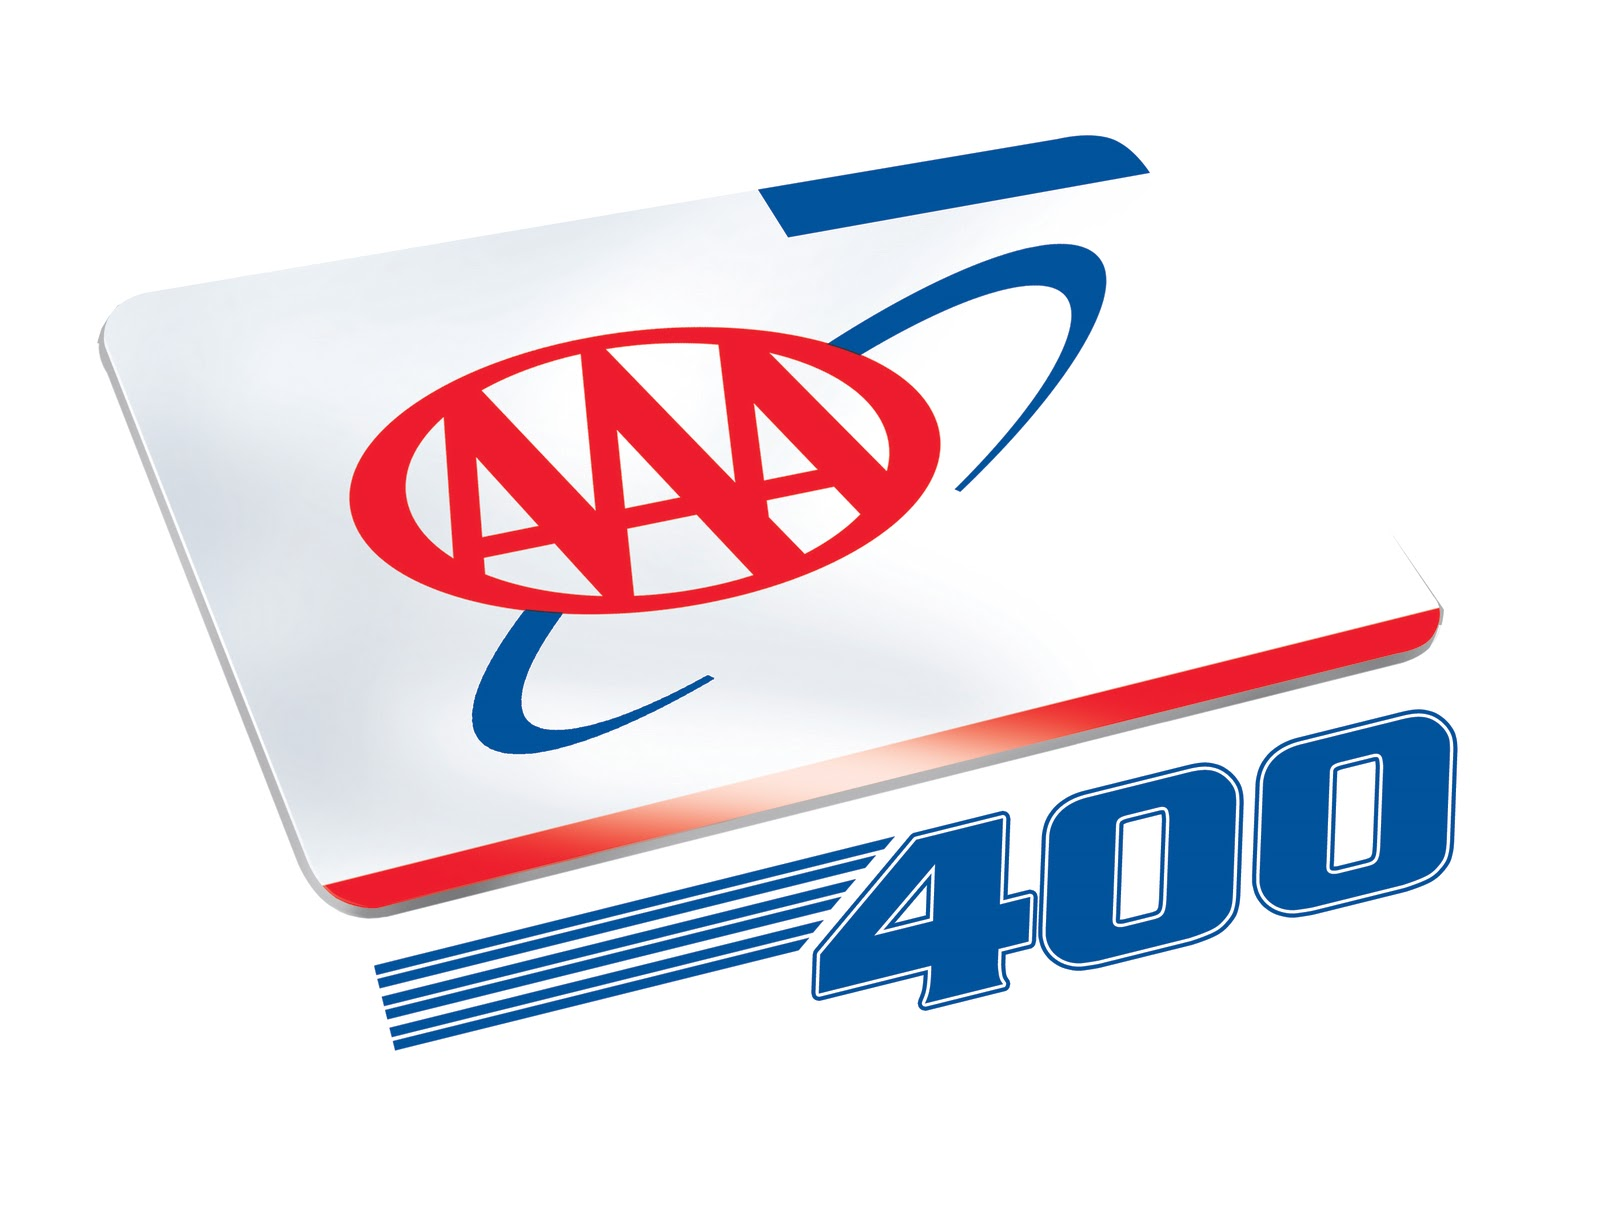 Statistical Advance: Analyzing the AAA 400